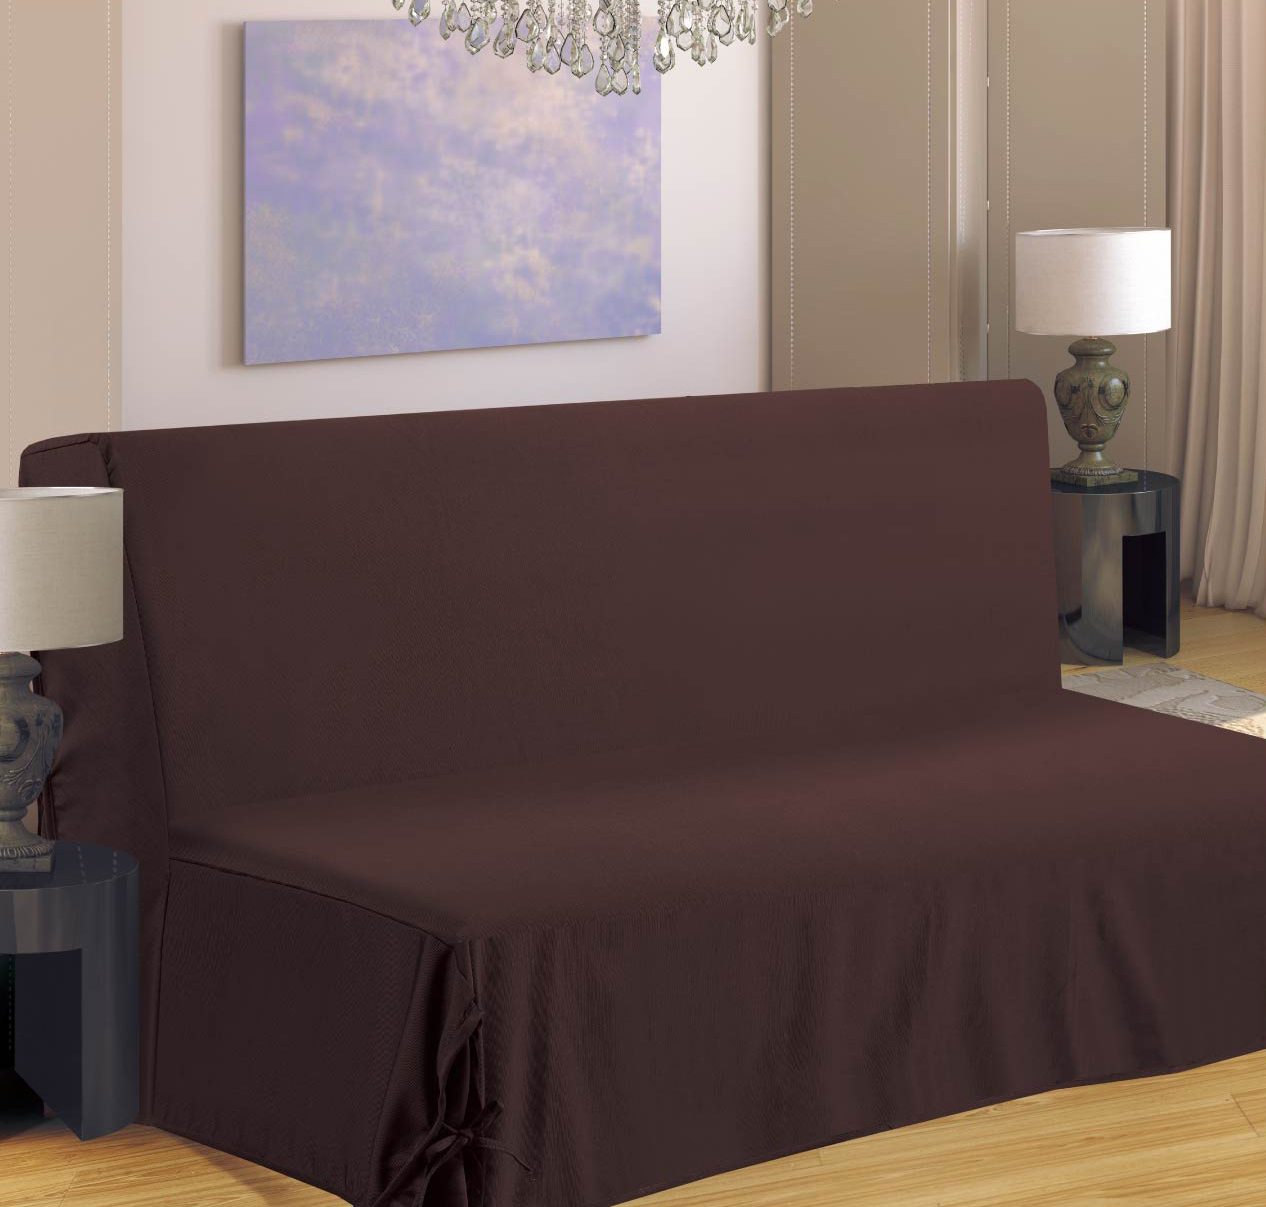 housse de canap pour bz chocolat bordeaux beige taupe gris violet homemaison. Black Bedroom Furniture Sets. Home Design Ideas